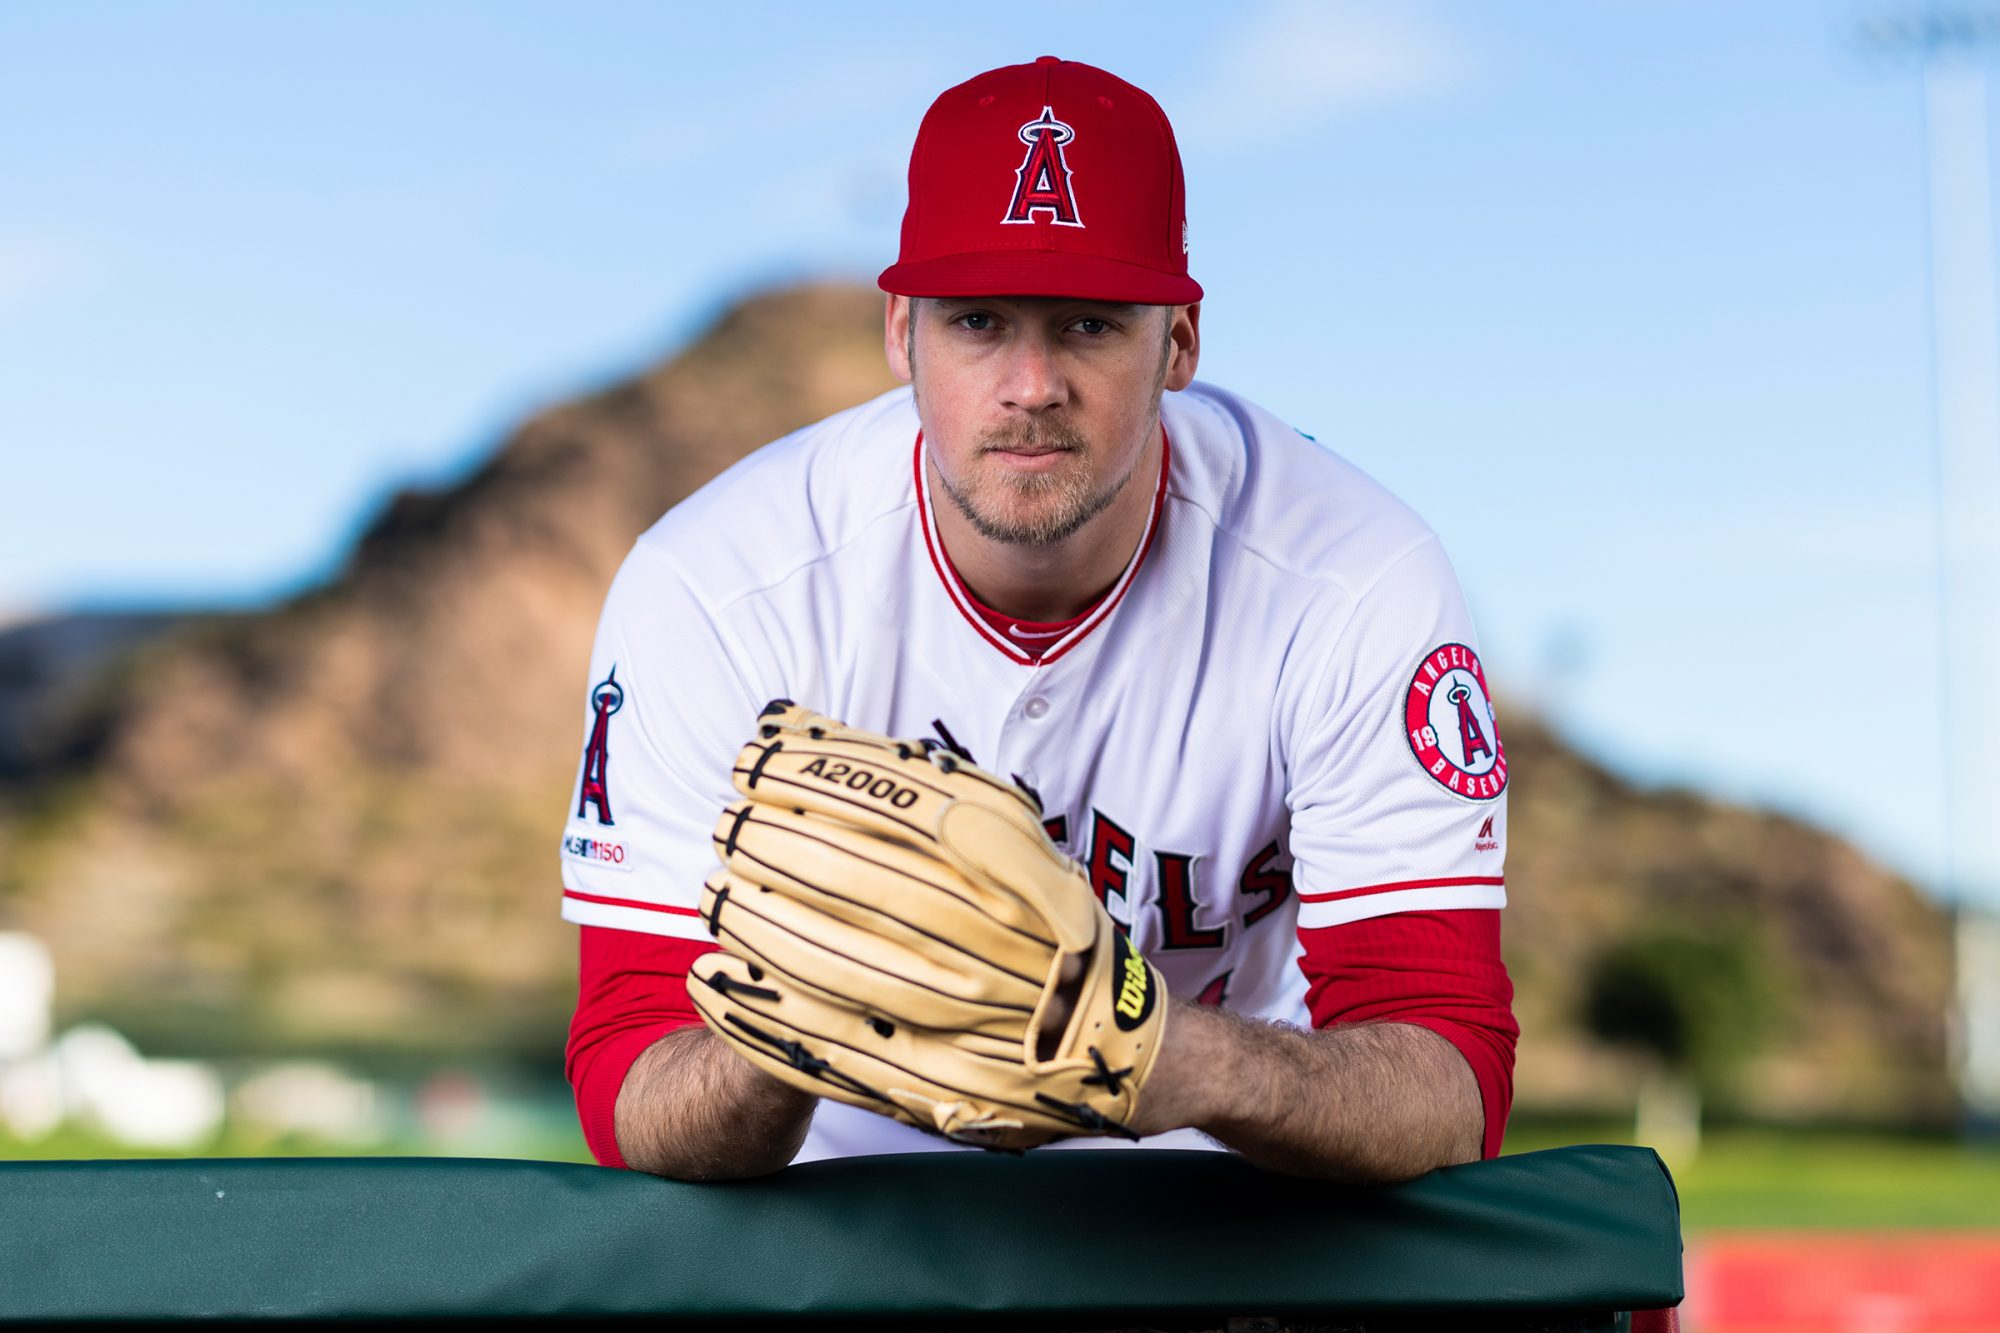 Los Angeles Angels pitcher Ty Buttrey